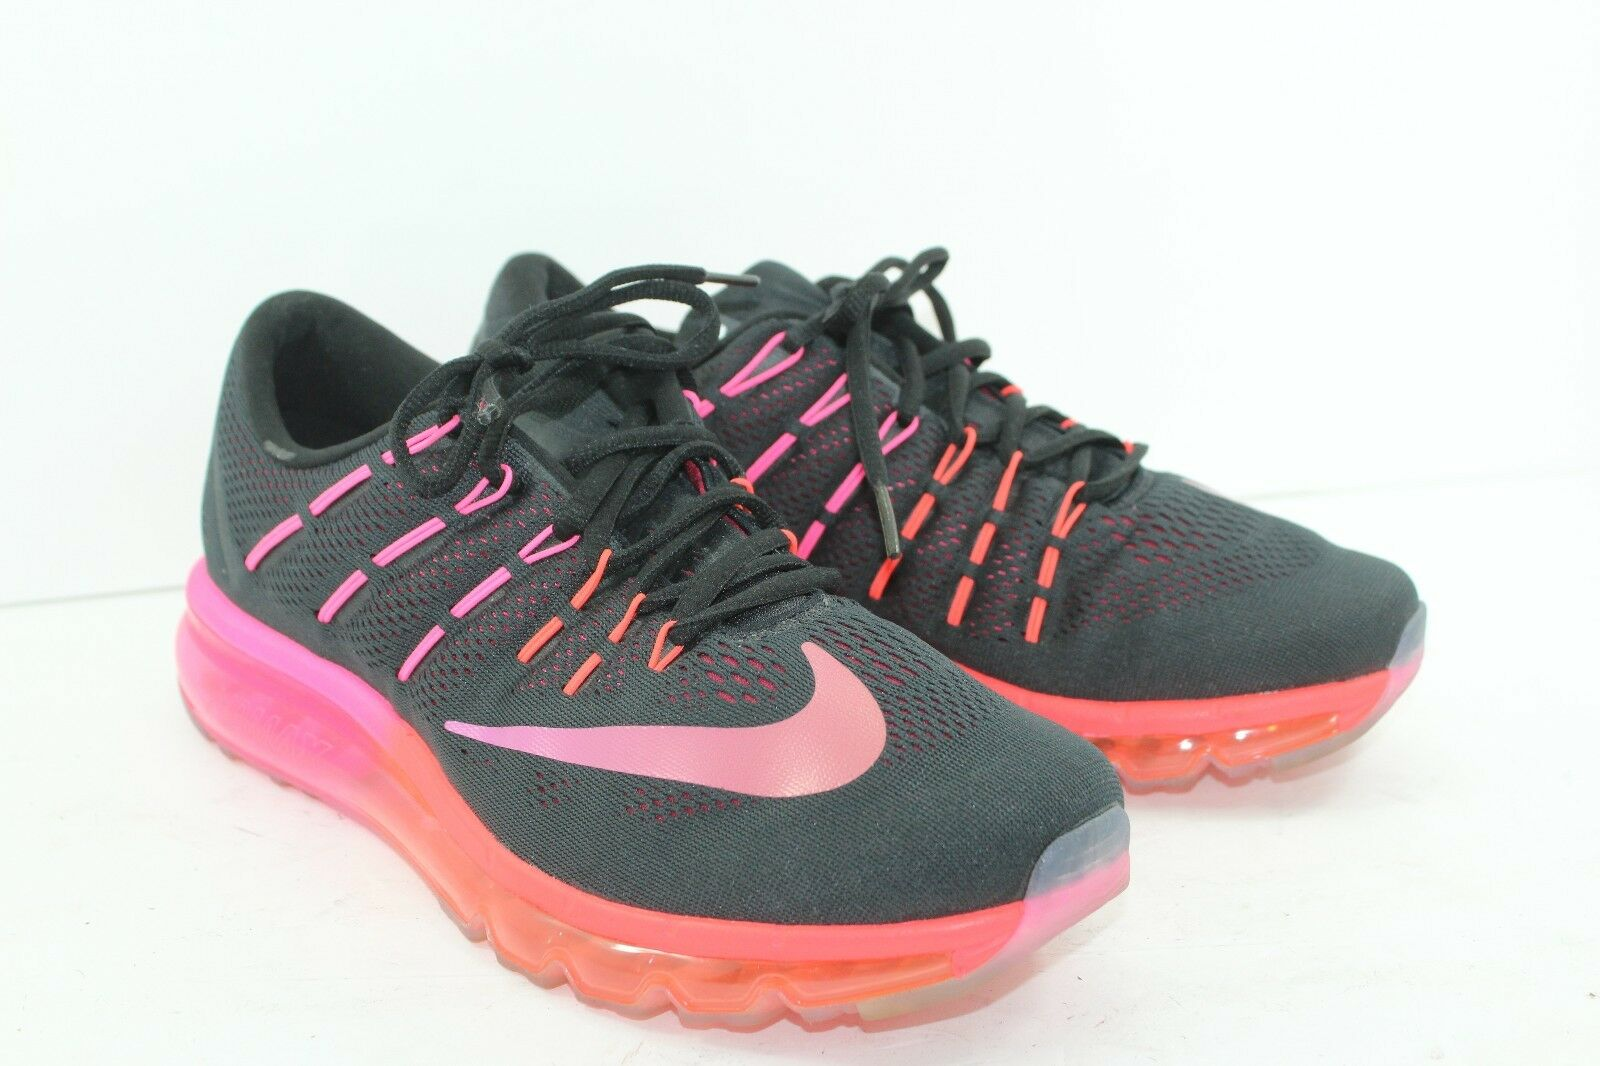 NIKE AIR 2016 BLACK PINK IN PRISTINE CONDITION SZ 12 WOMEN'S